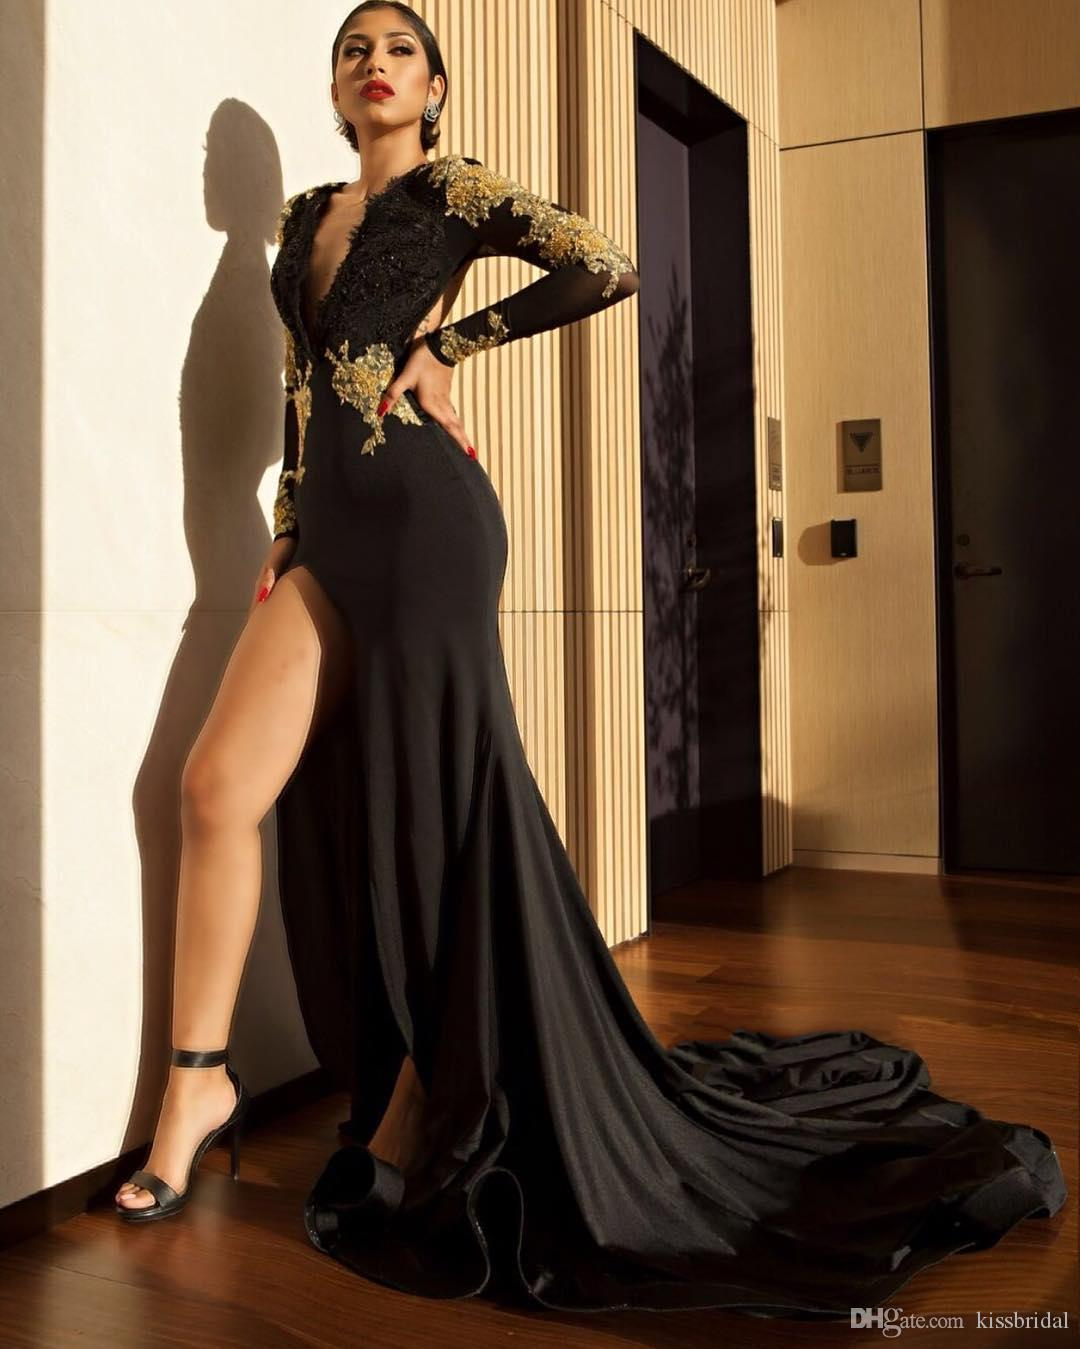 Black and Gold Prom Dresses with Long Sleeve 2019 Sexy Mermaid V-Neck Split Formal Evening Gowns Bead Lace Appliques Cocktail Party Dress